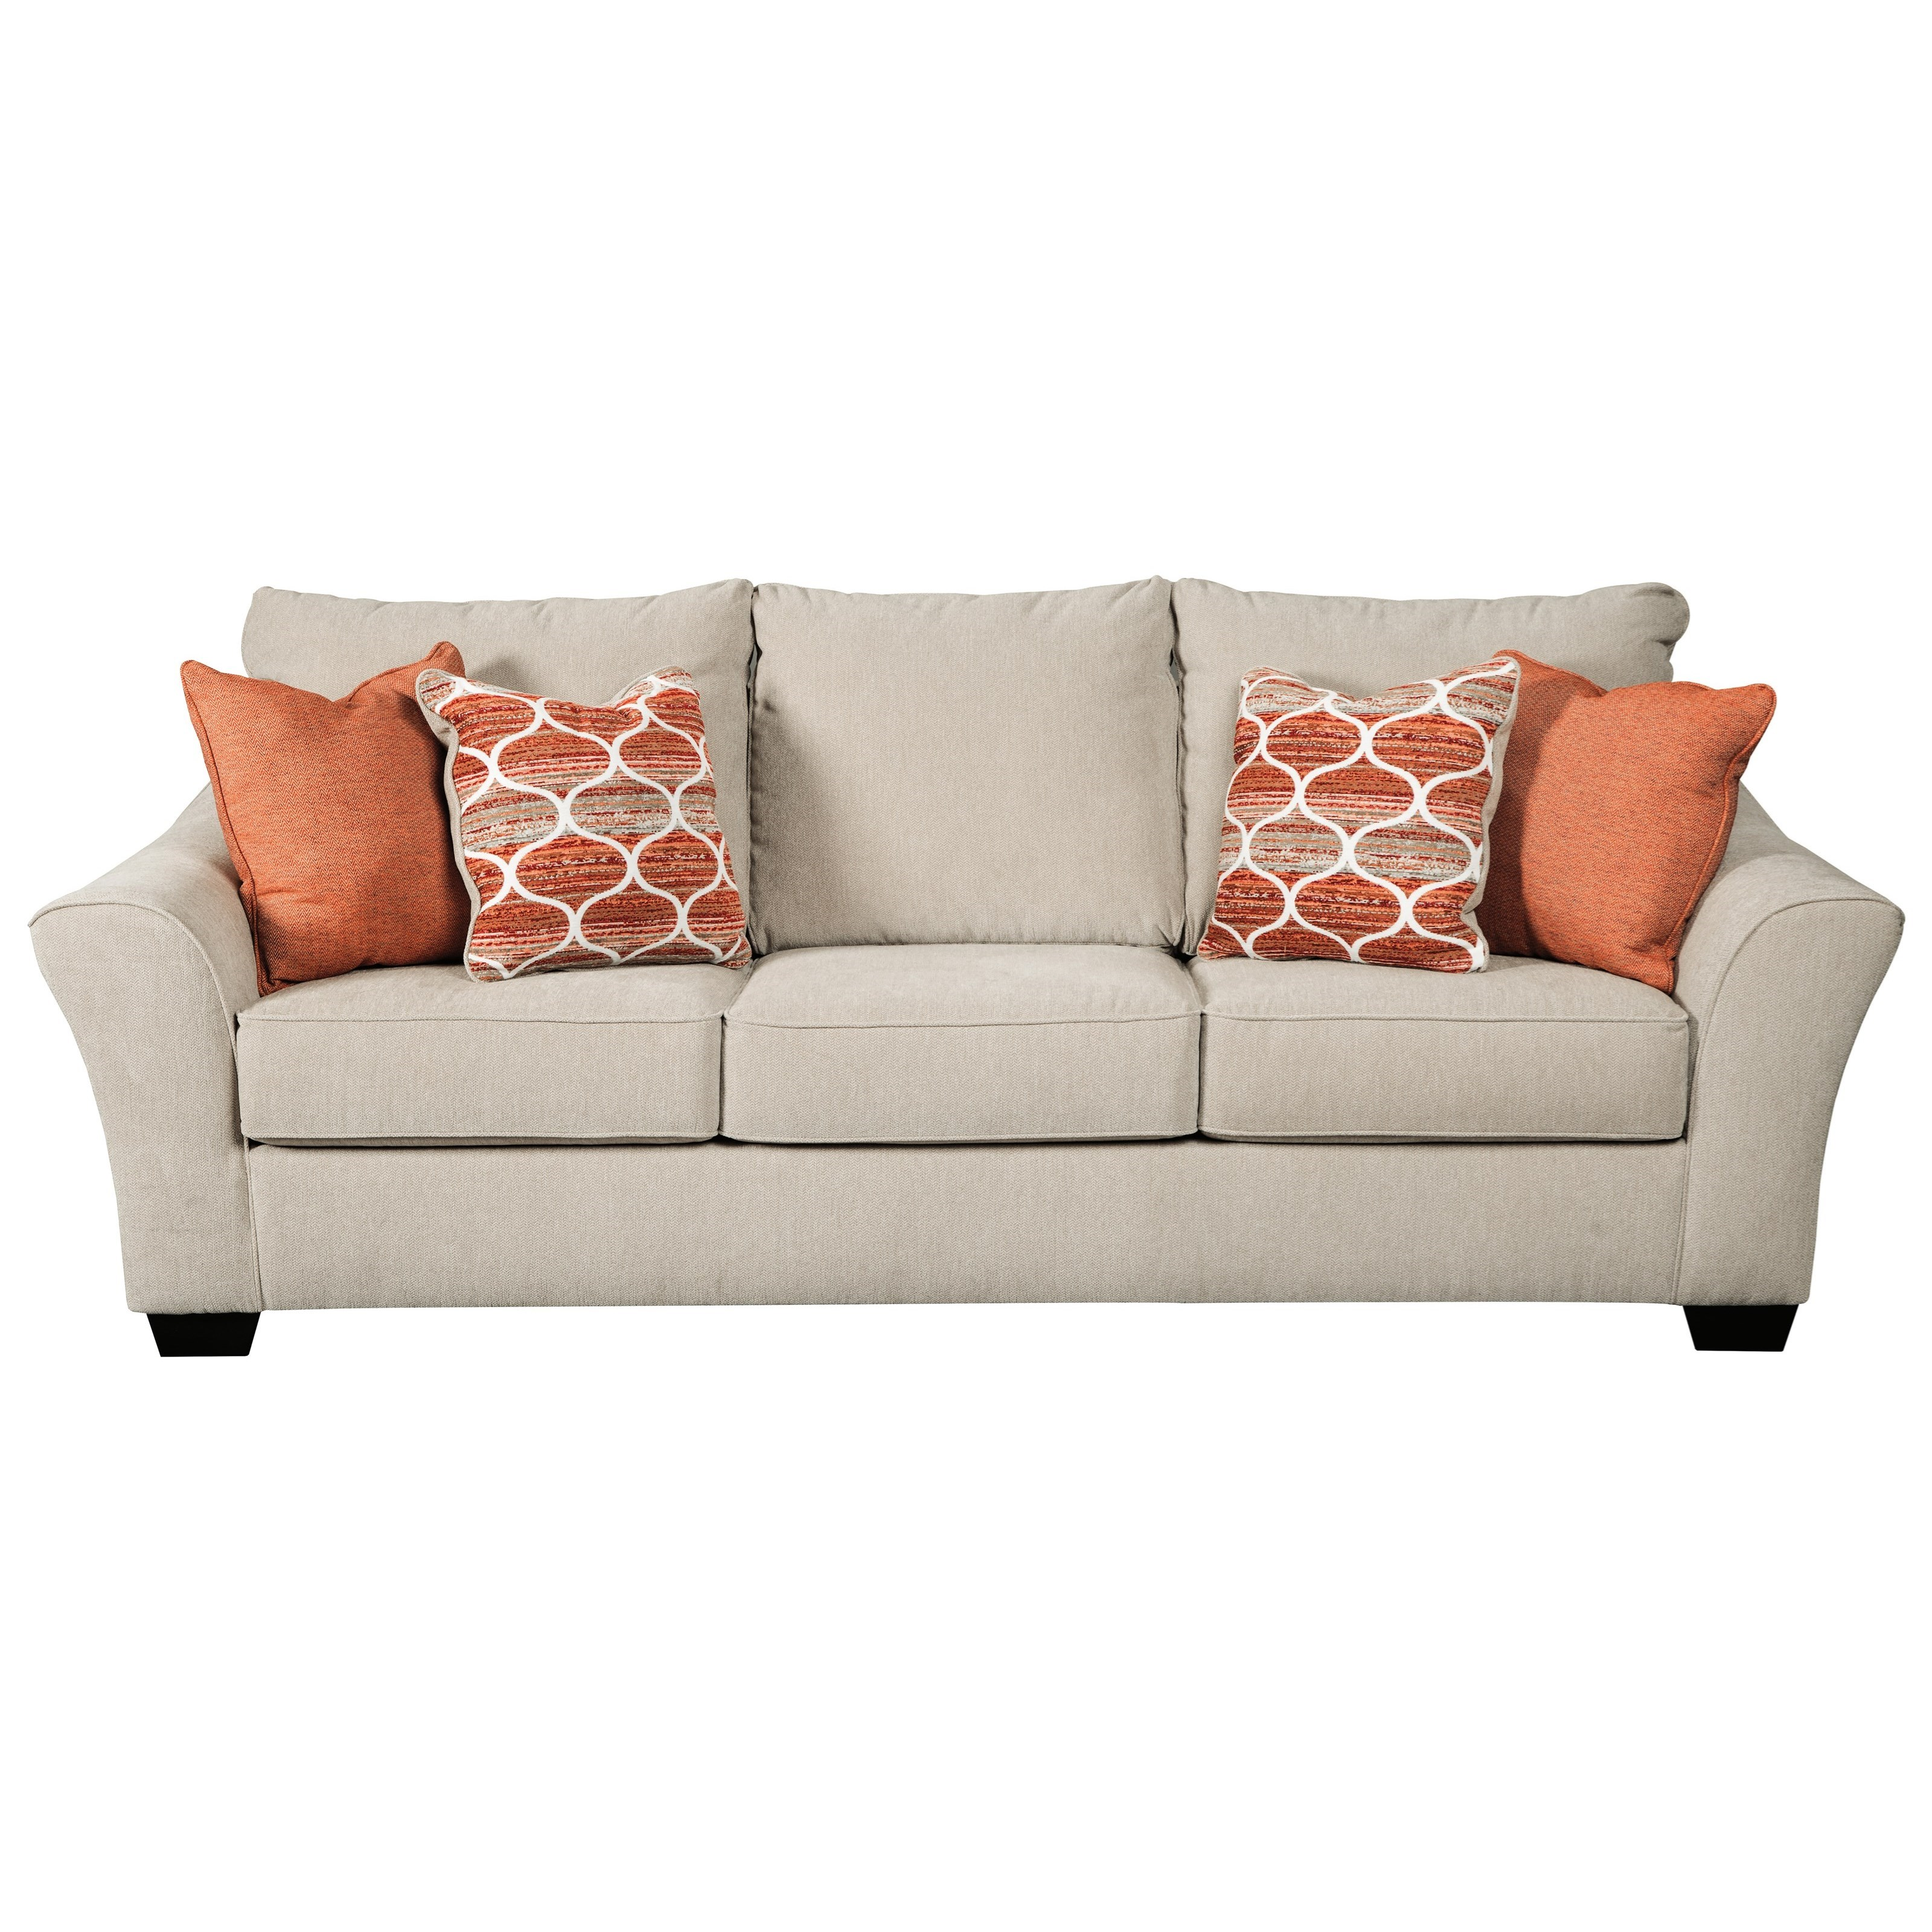 Benchcraft By Ashley Lisle Nuvella Queen Size Sofa Sleeper In Performance Fabric Royal